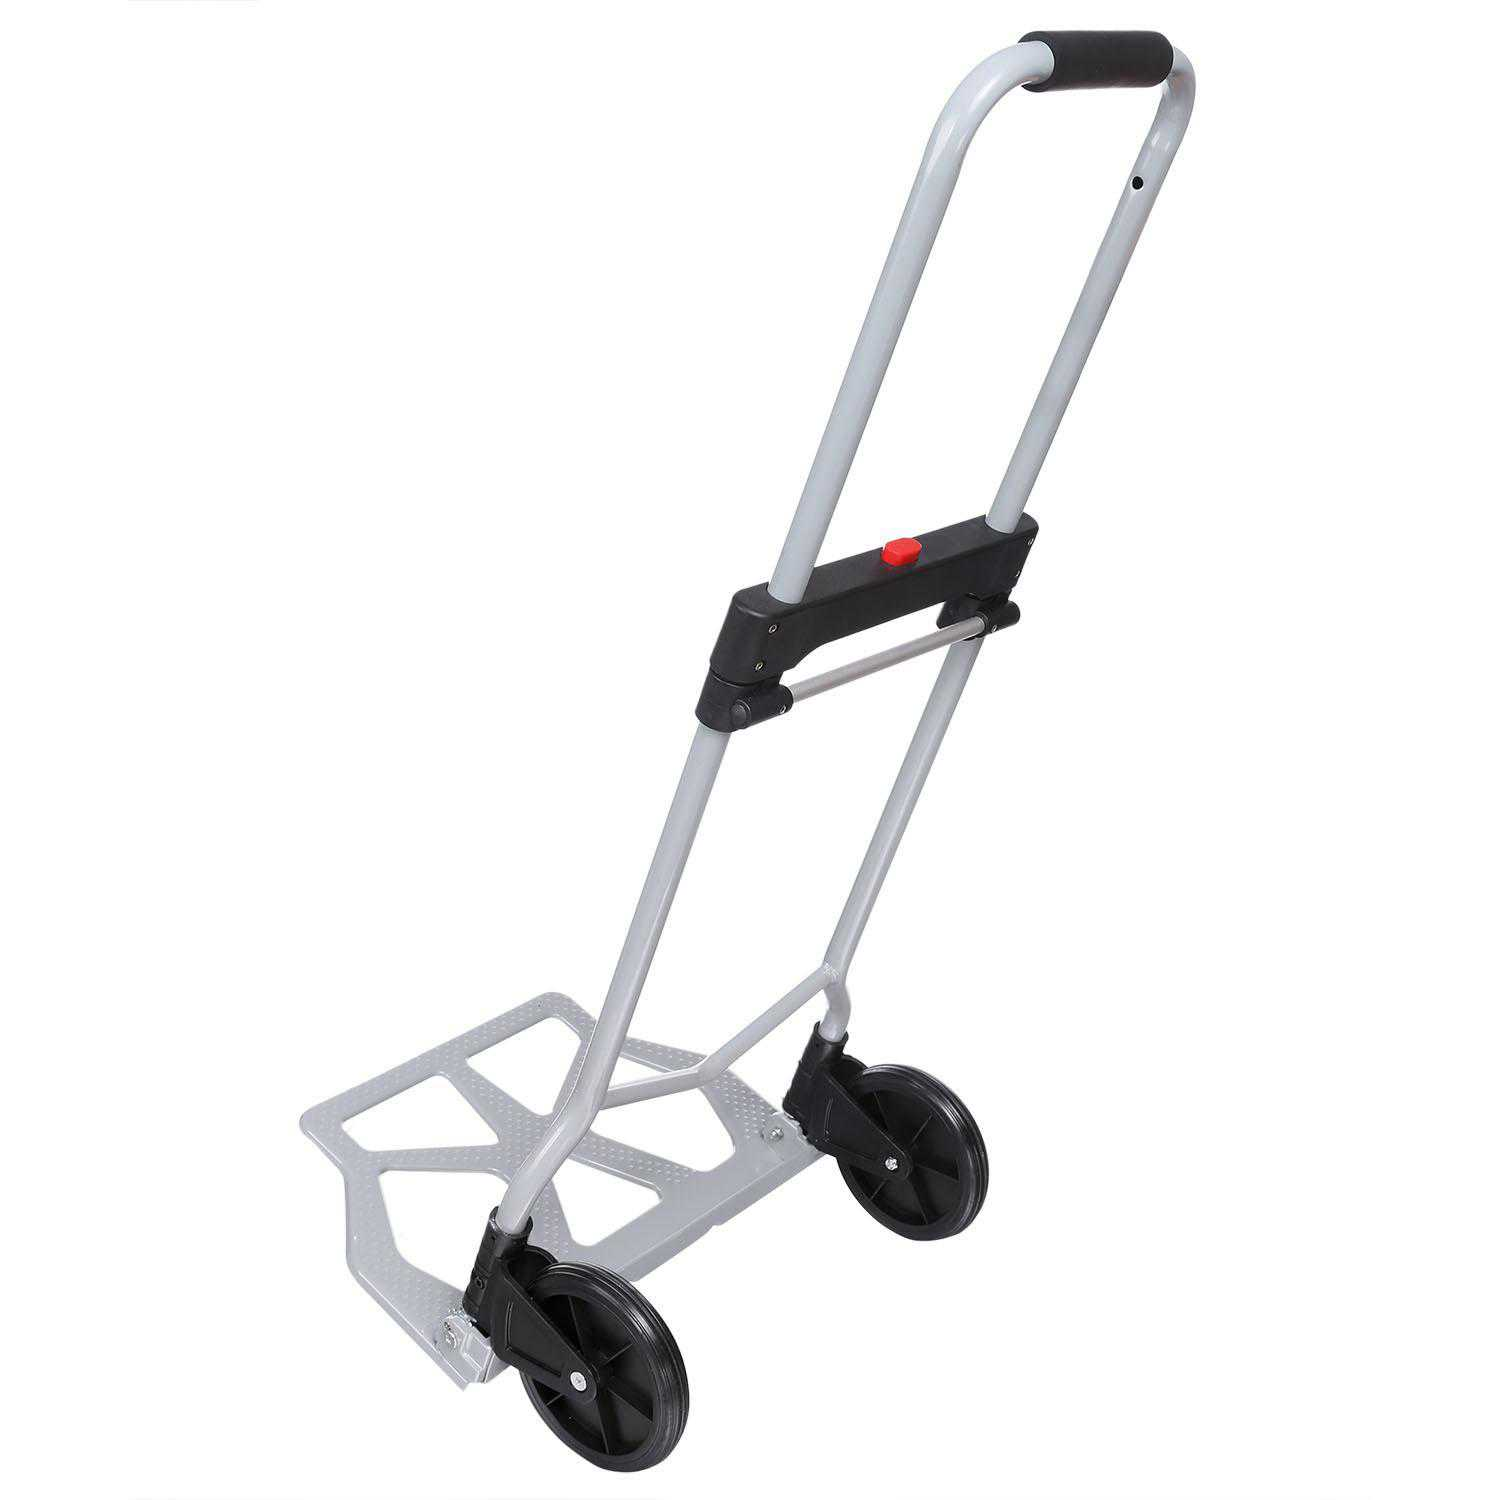 Folding Hand Truck Traveling Shopping Porta Industrial Cargo Dolly Luggage Carts 220 lbs Capacity